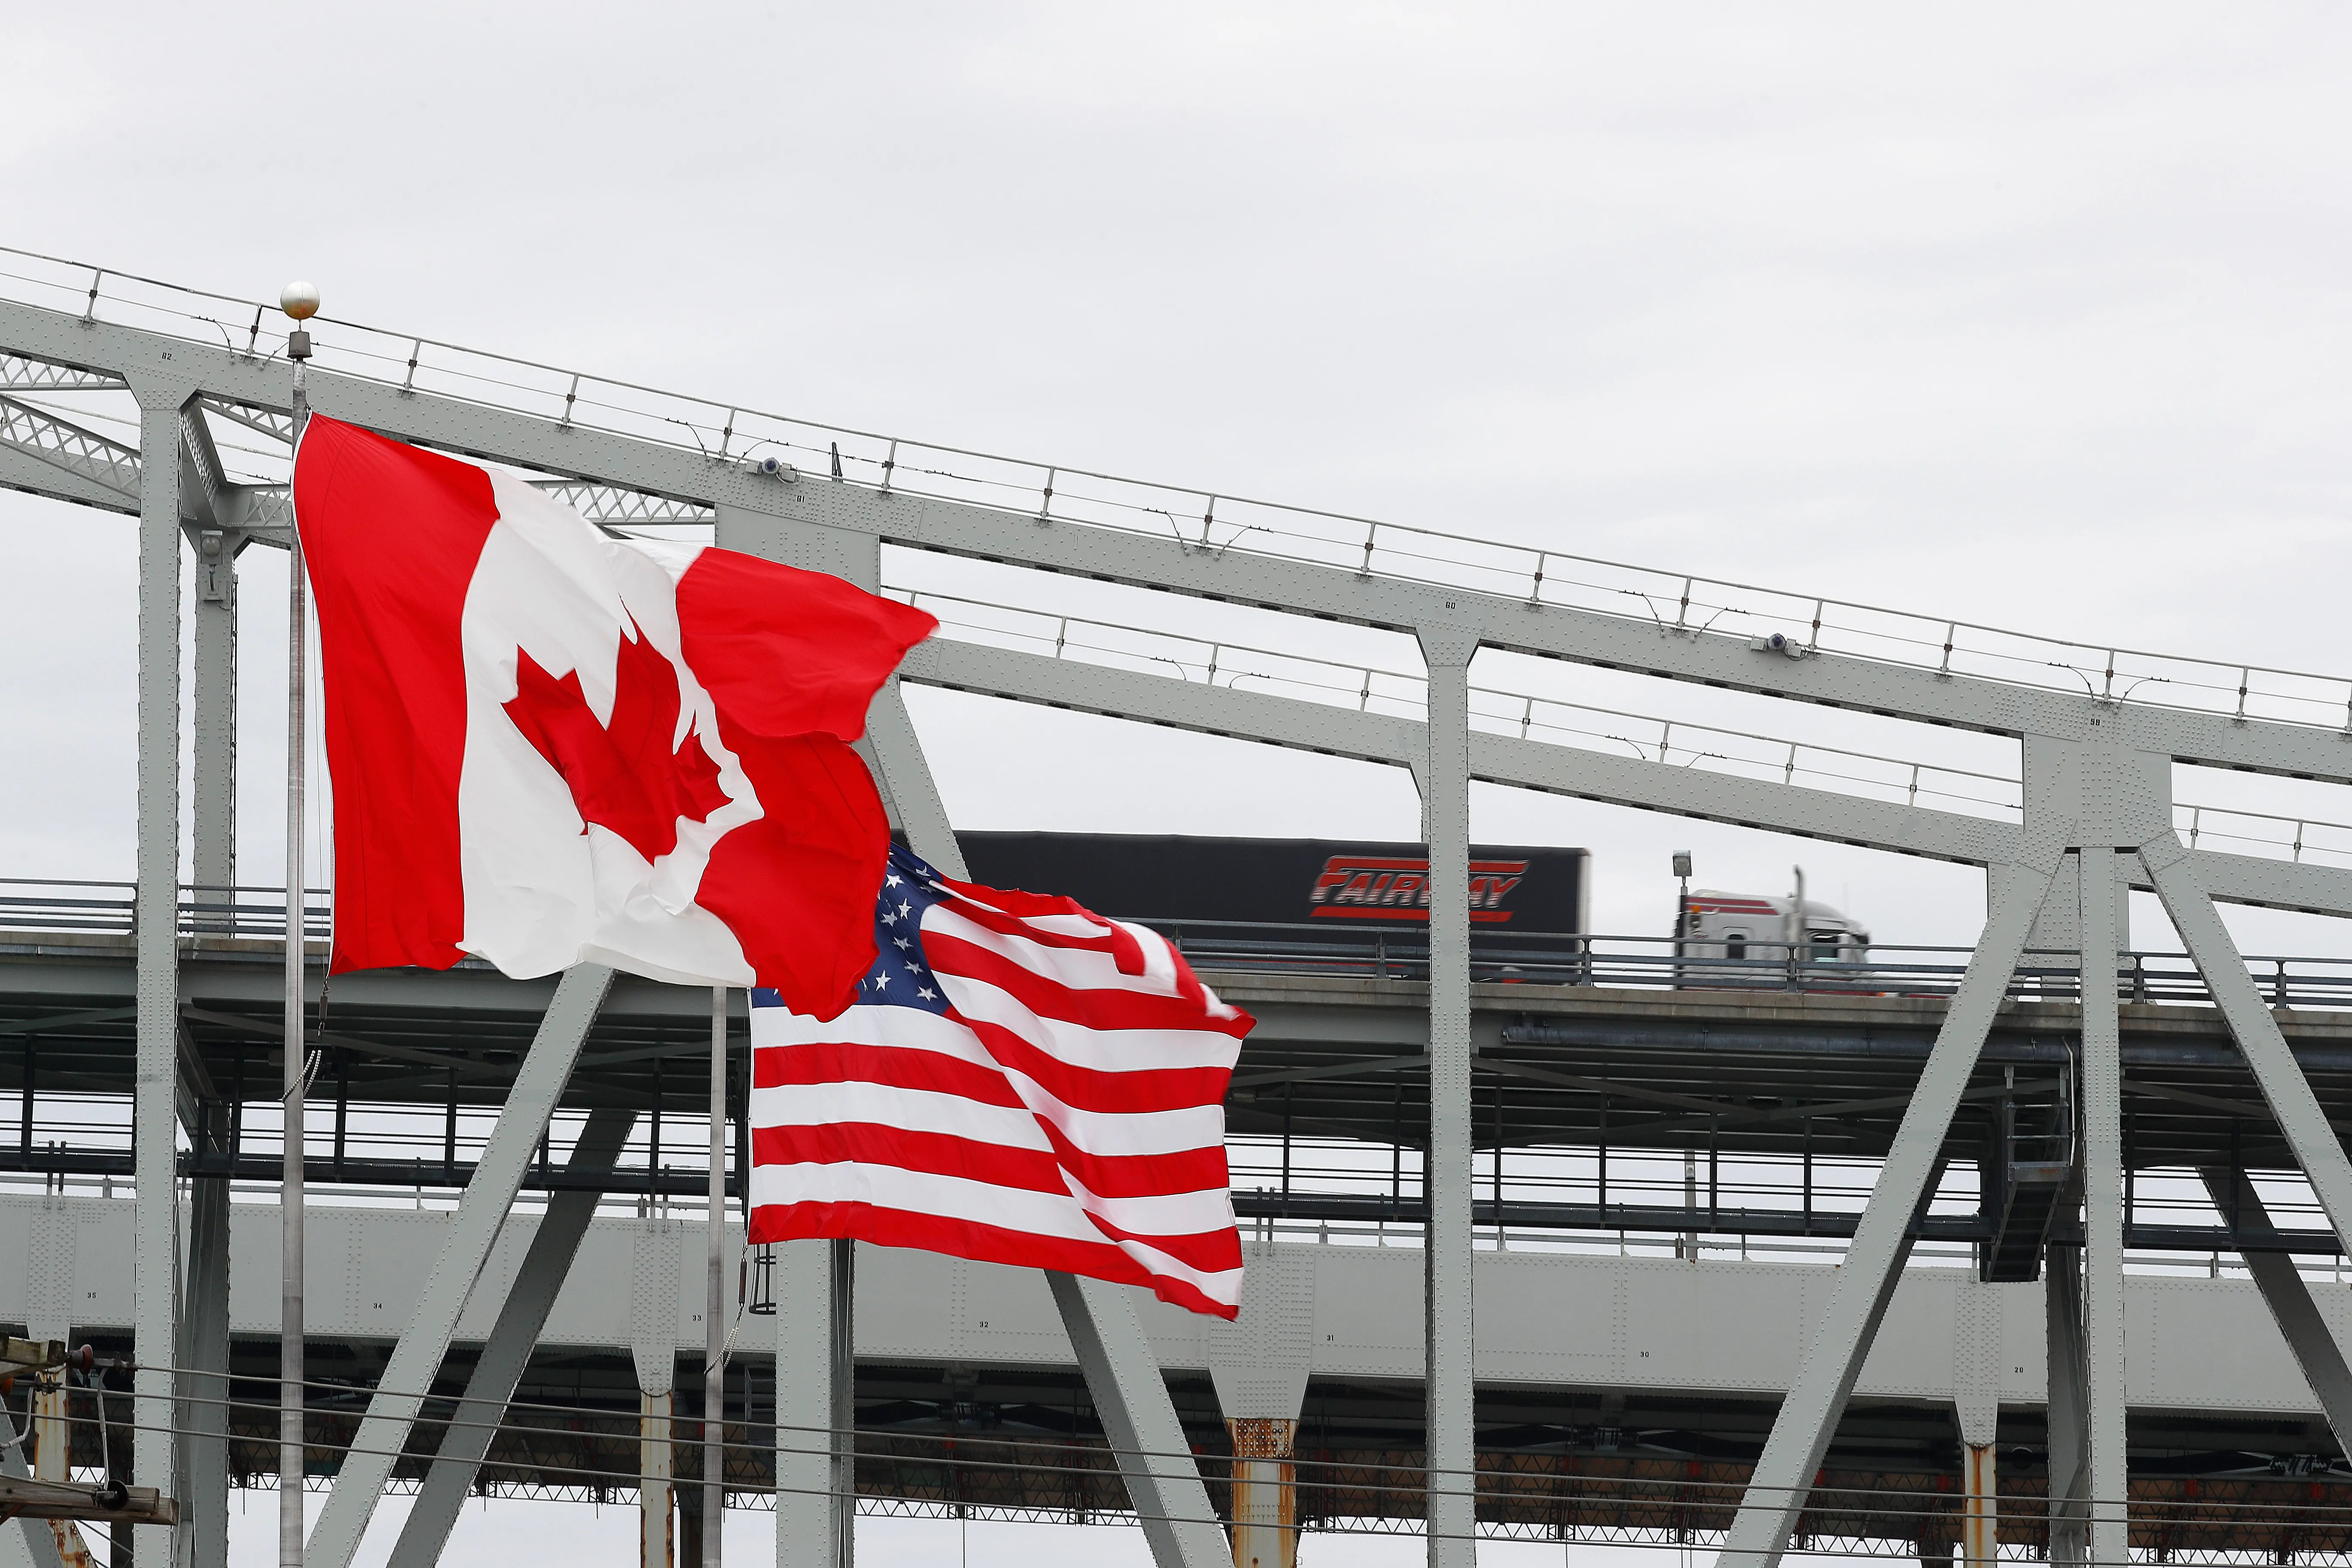 After more than a year of border closures, non-essential travelers from Canada and Mexico will be able to enter the United States